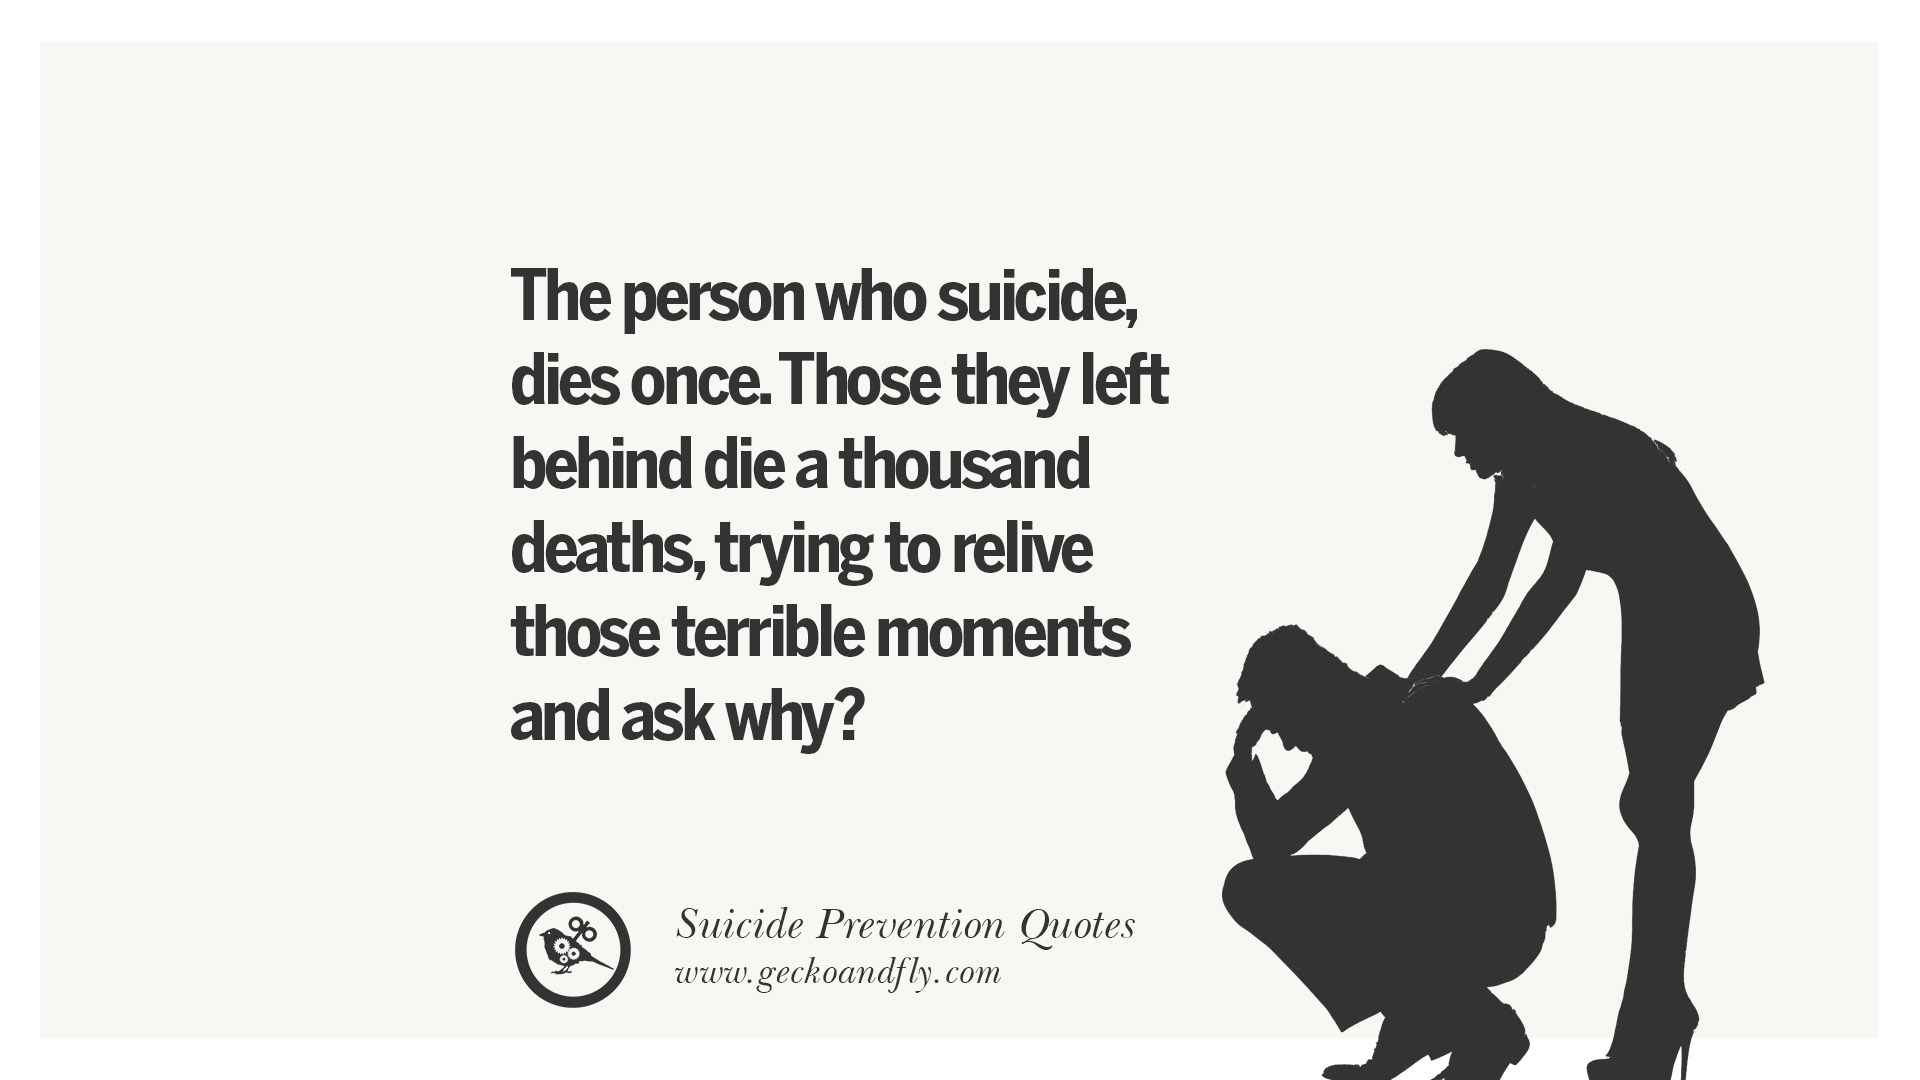 Suicidal Quotes About Love 30 Helpful Suicidal Prevention Ideation Thoughts And Quotes